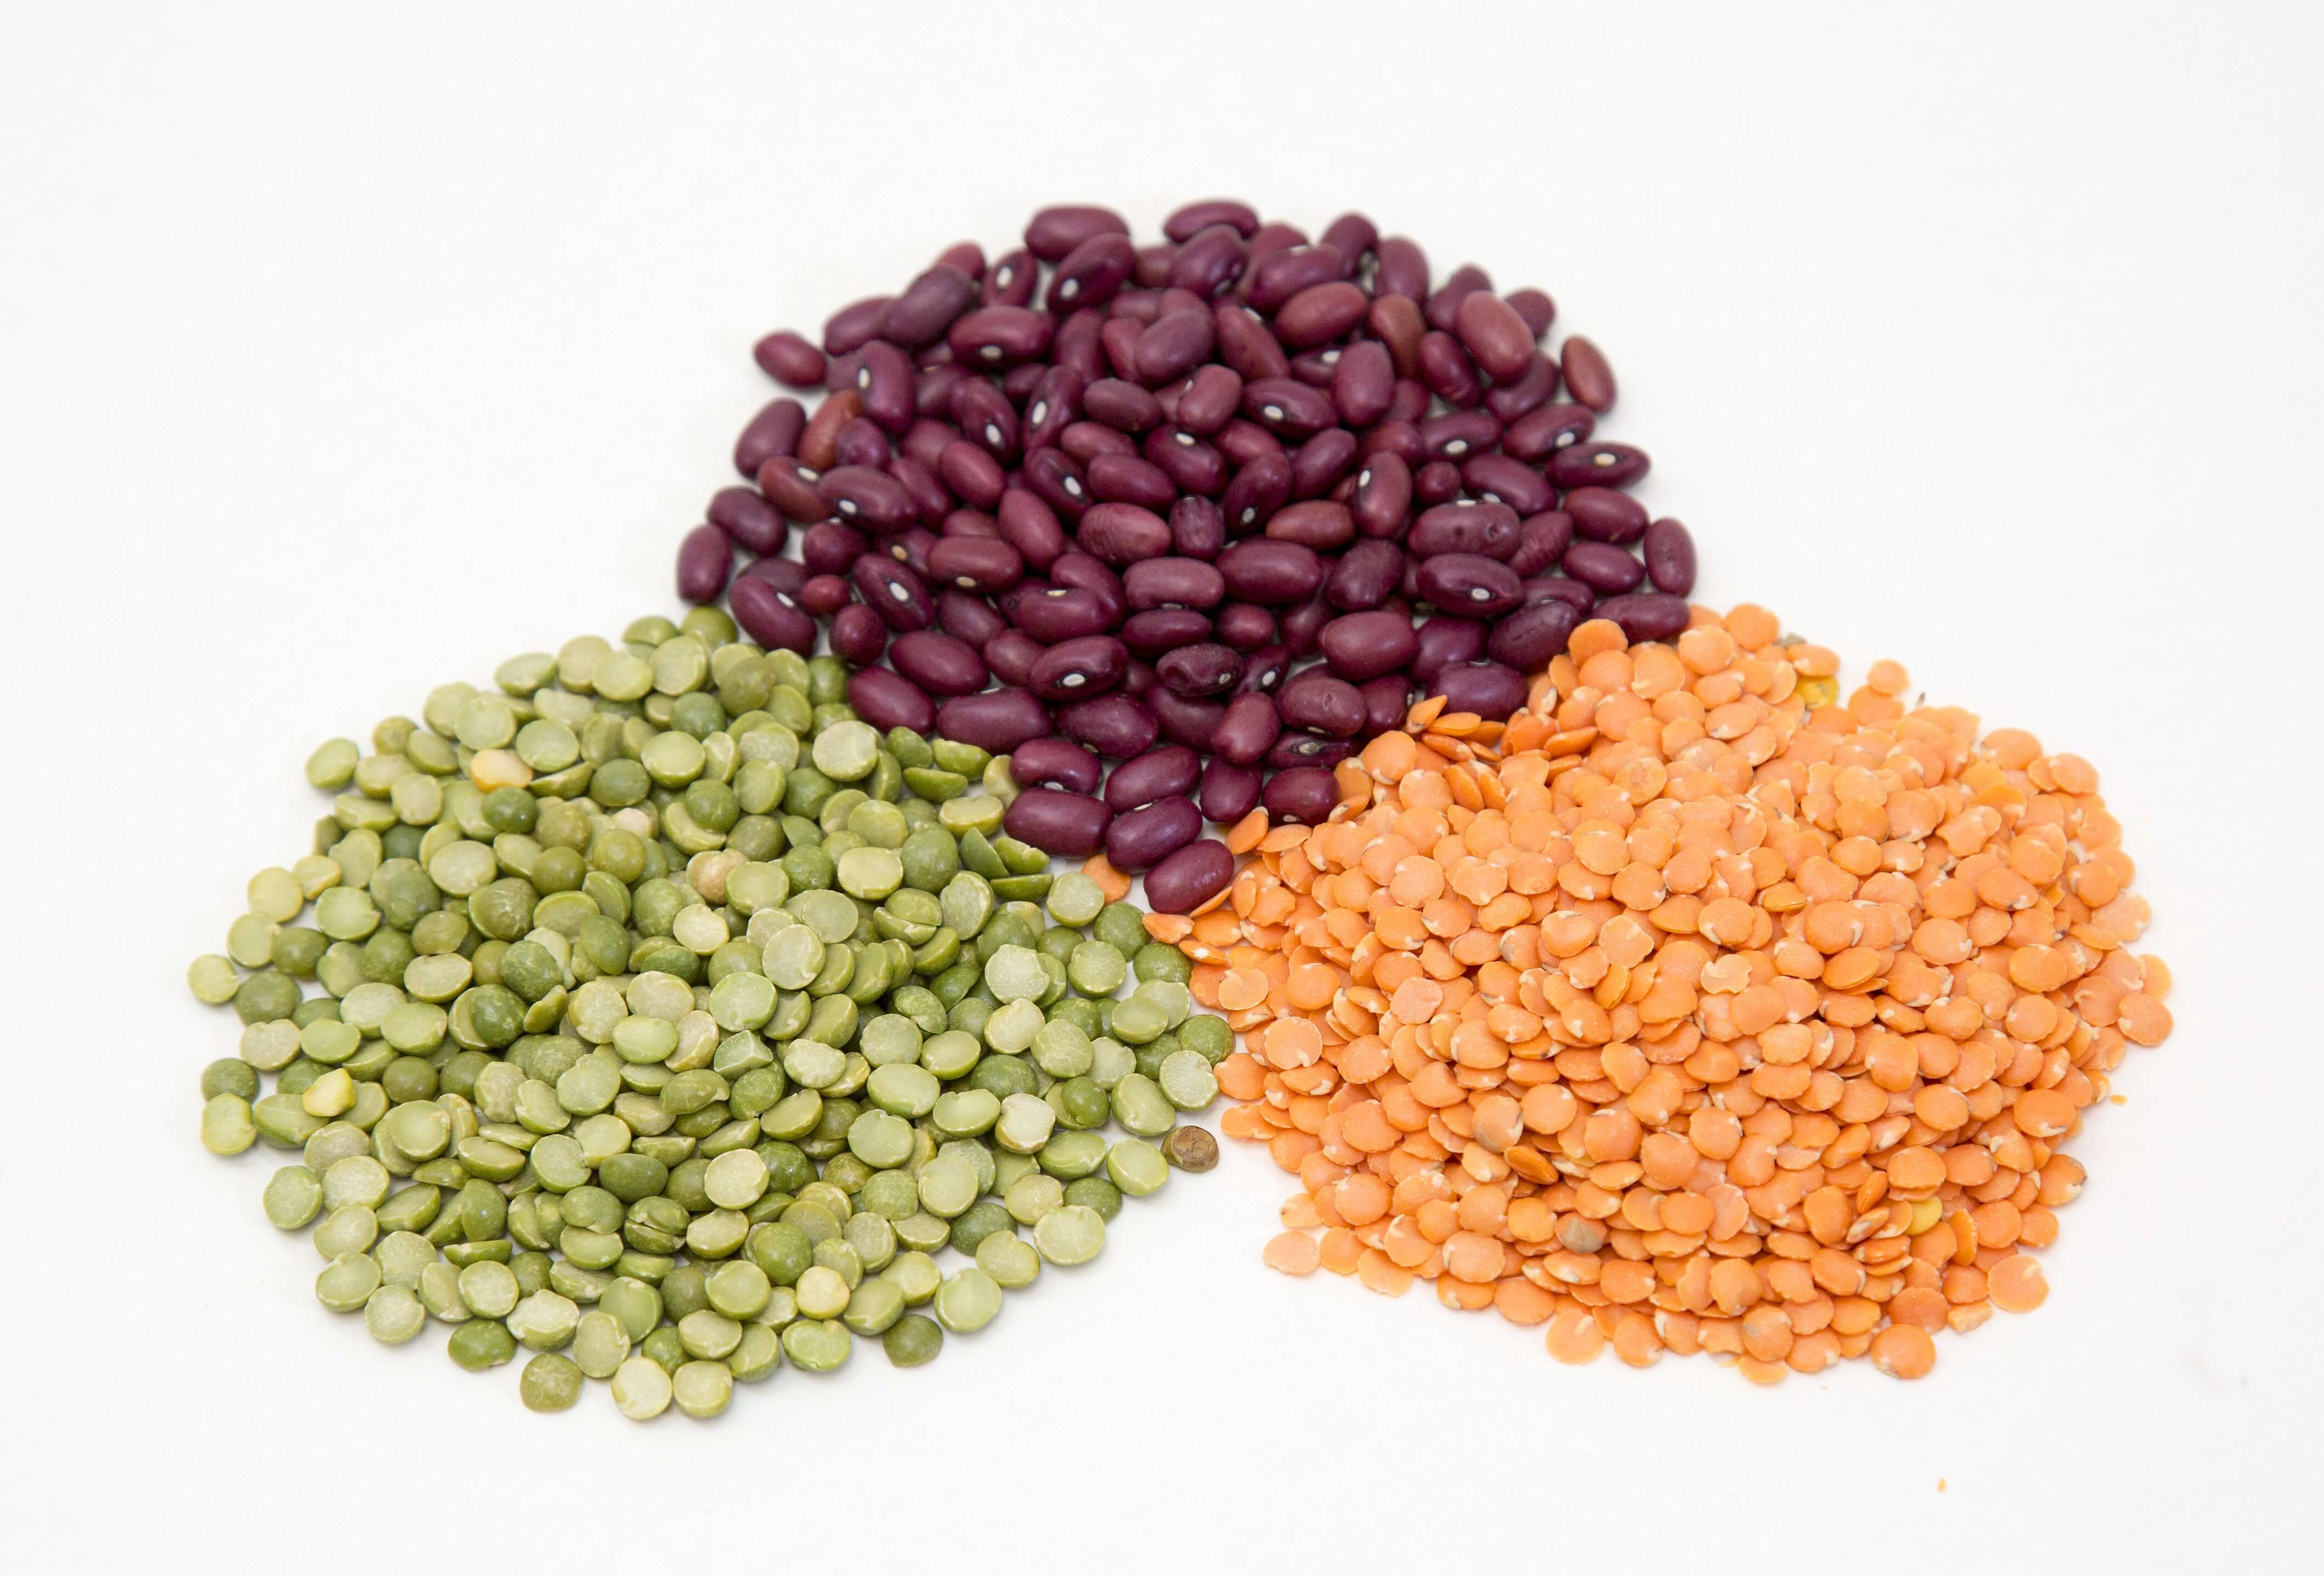 Legumes are just one food that contain spermidine, a type of organic compound known to help prevent disease and increasethe lifespan of humans.